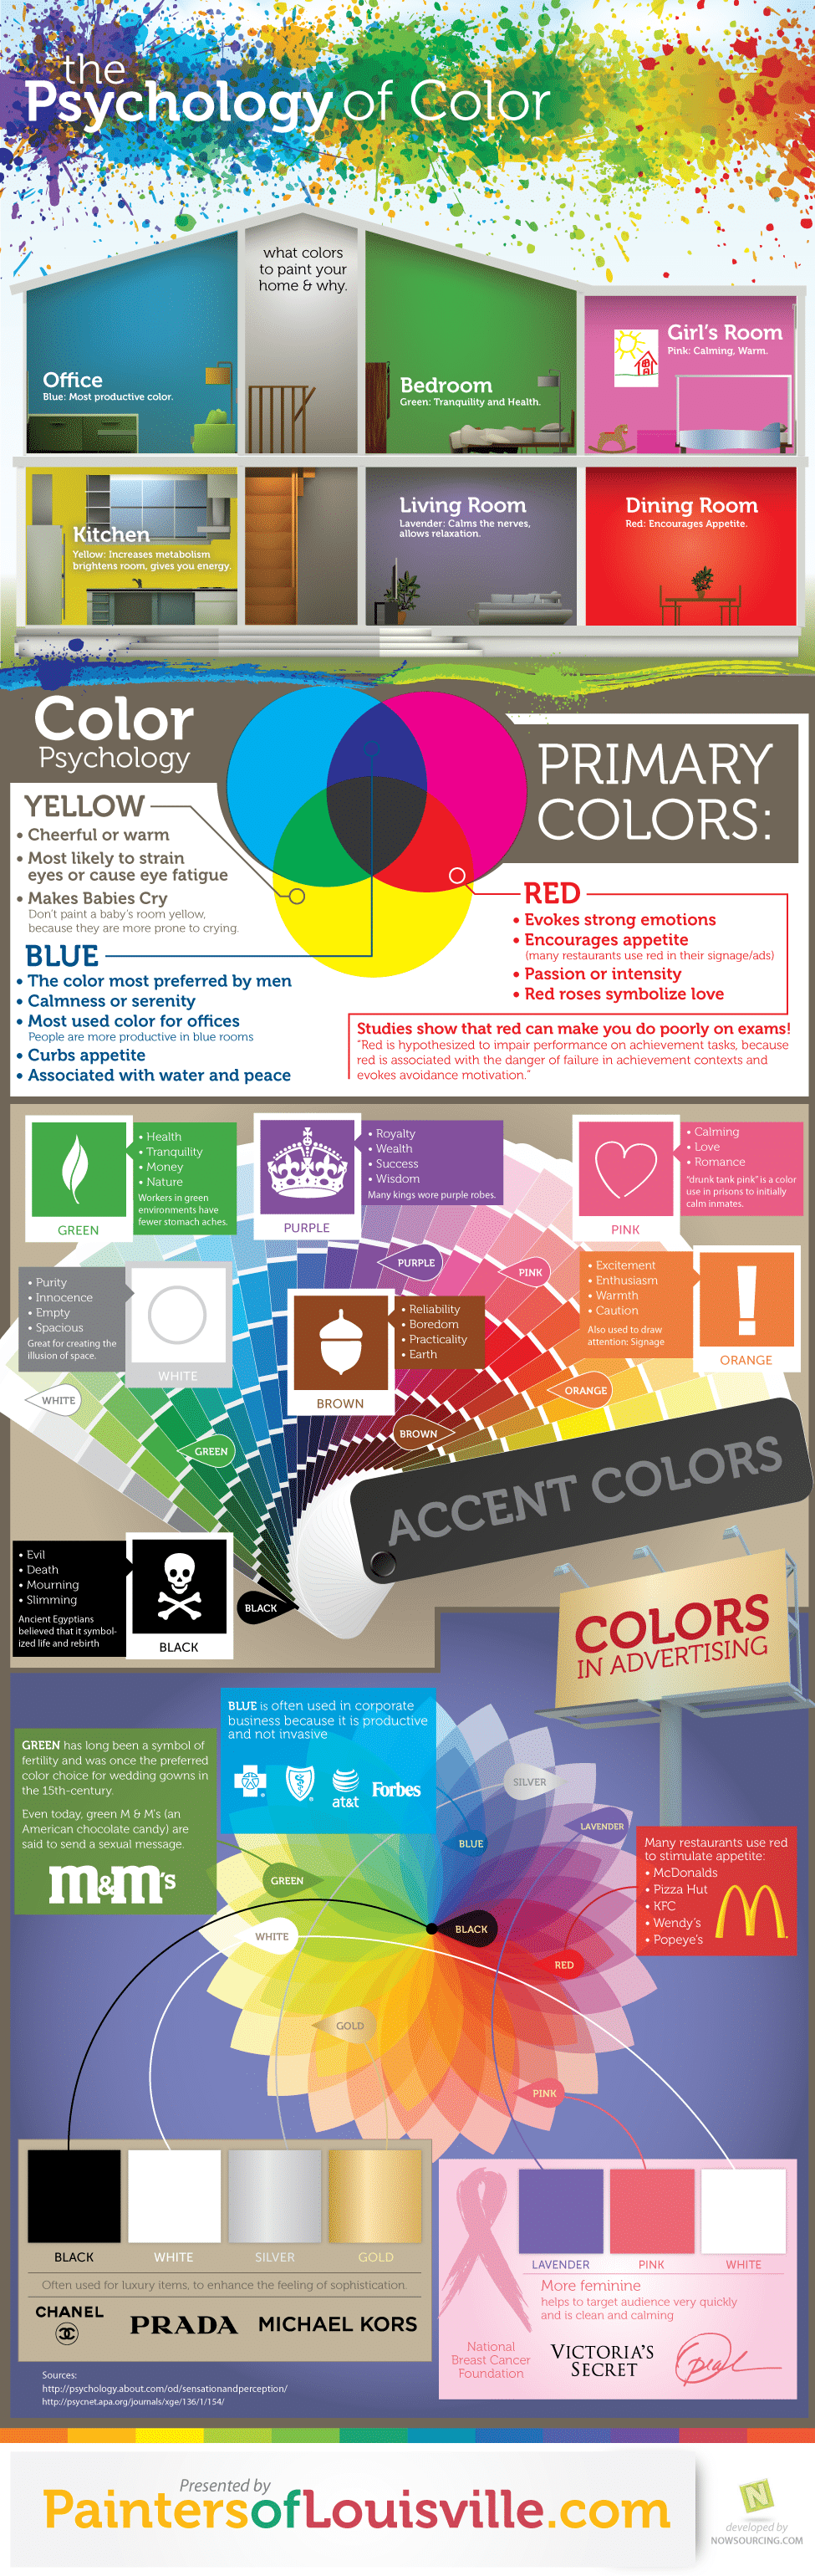 the-psuchology-of-color-infographic